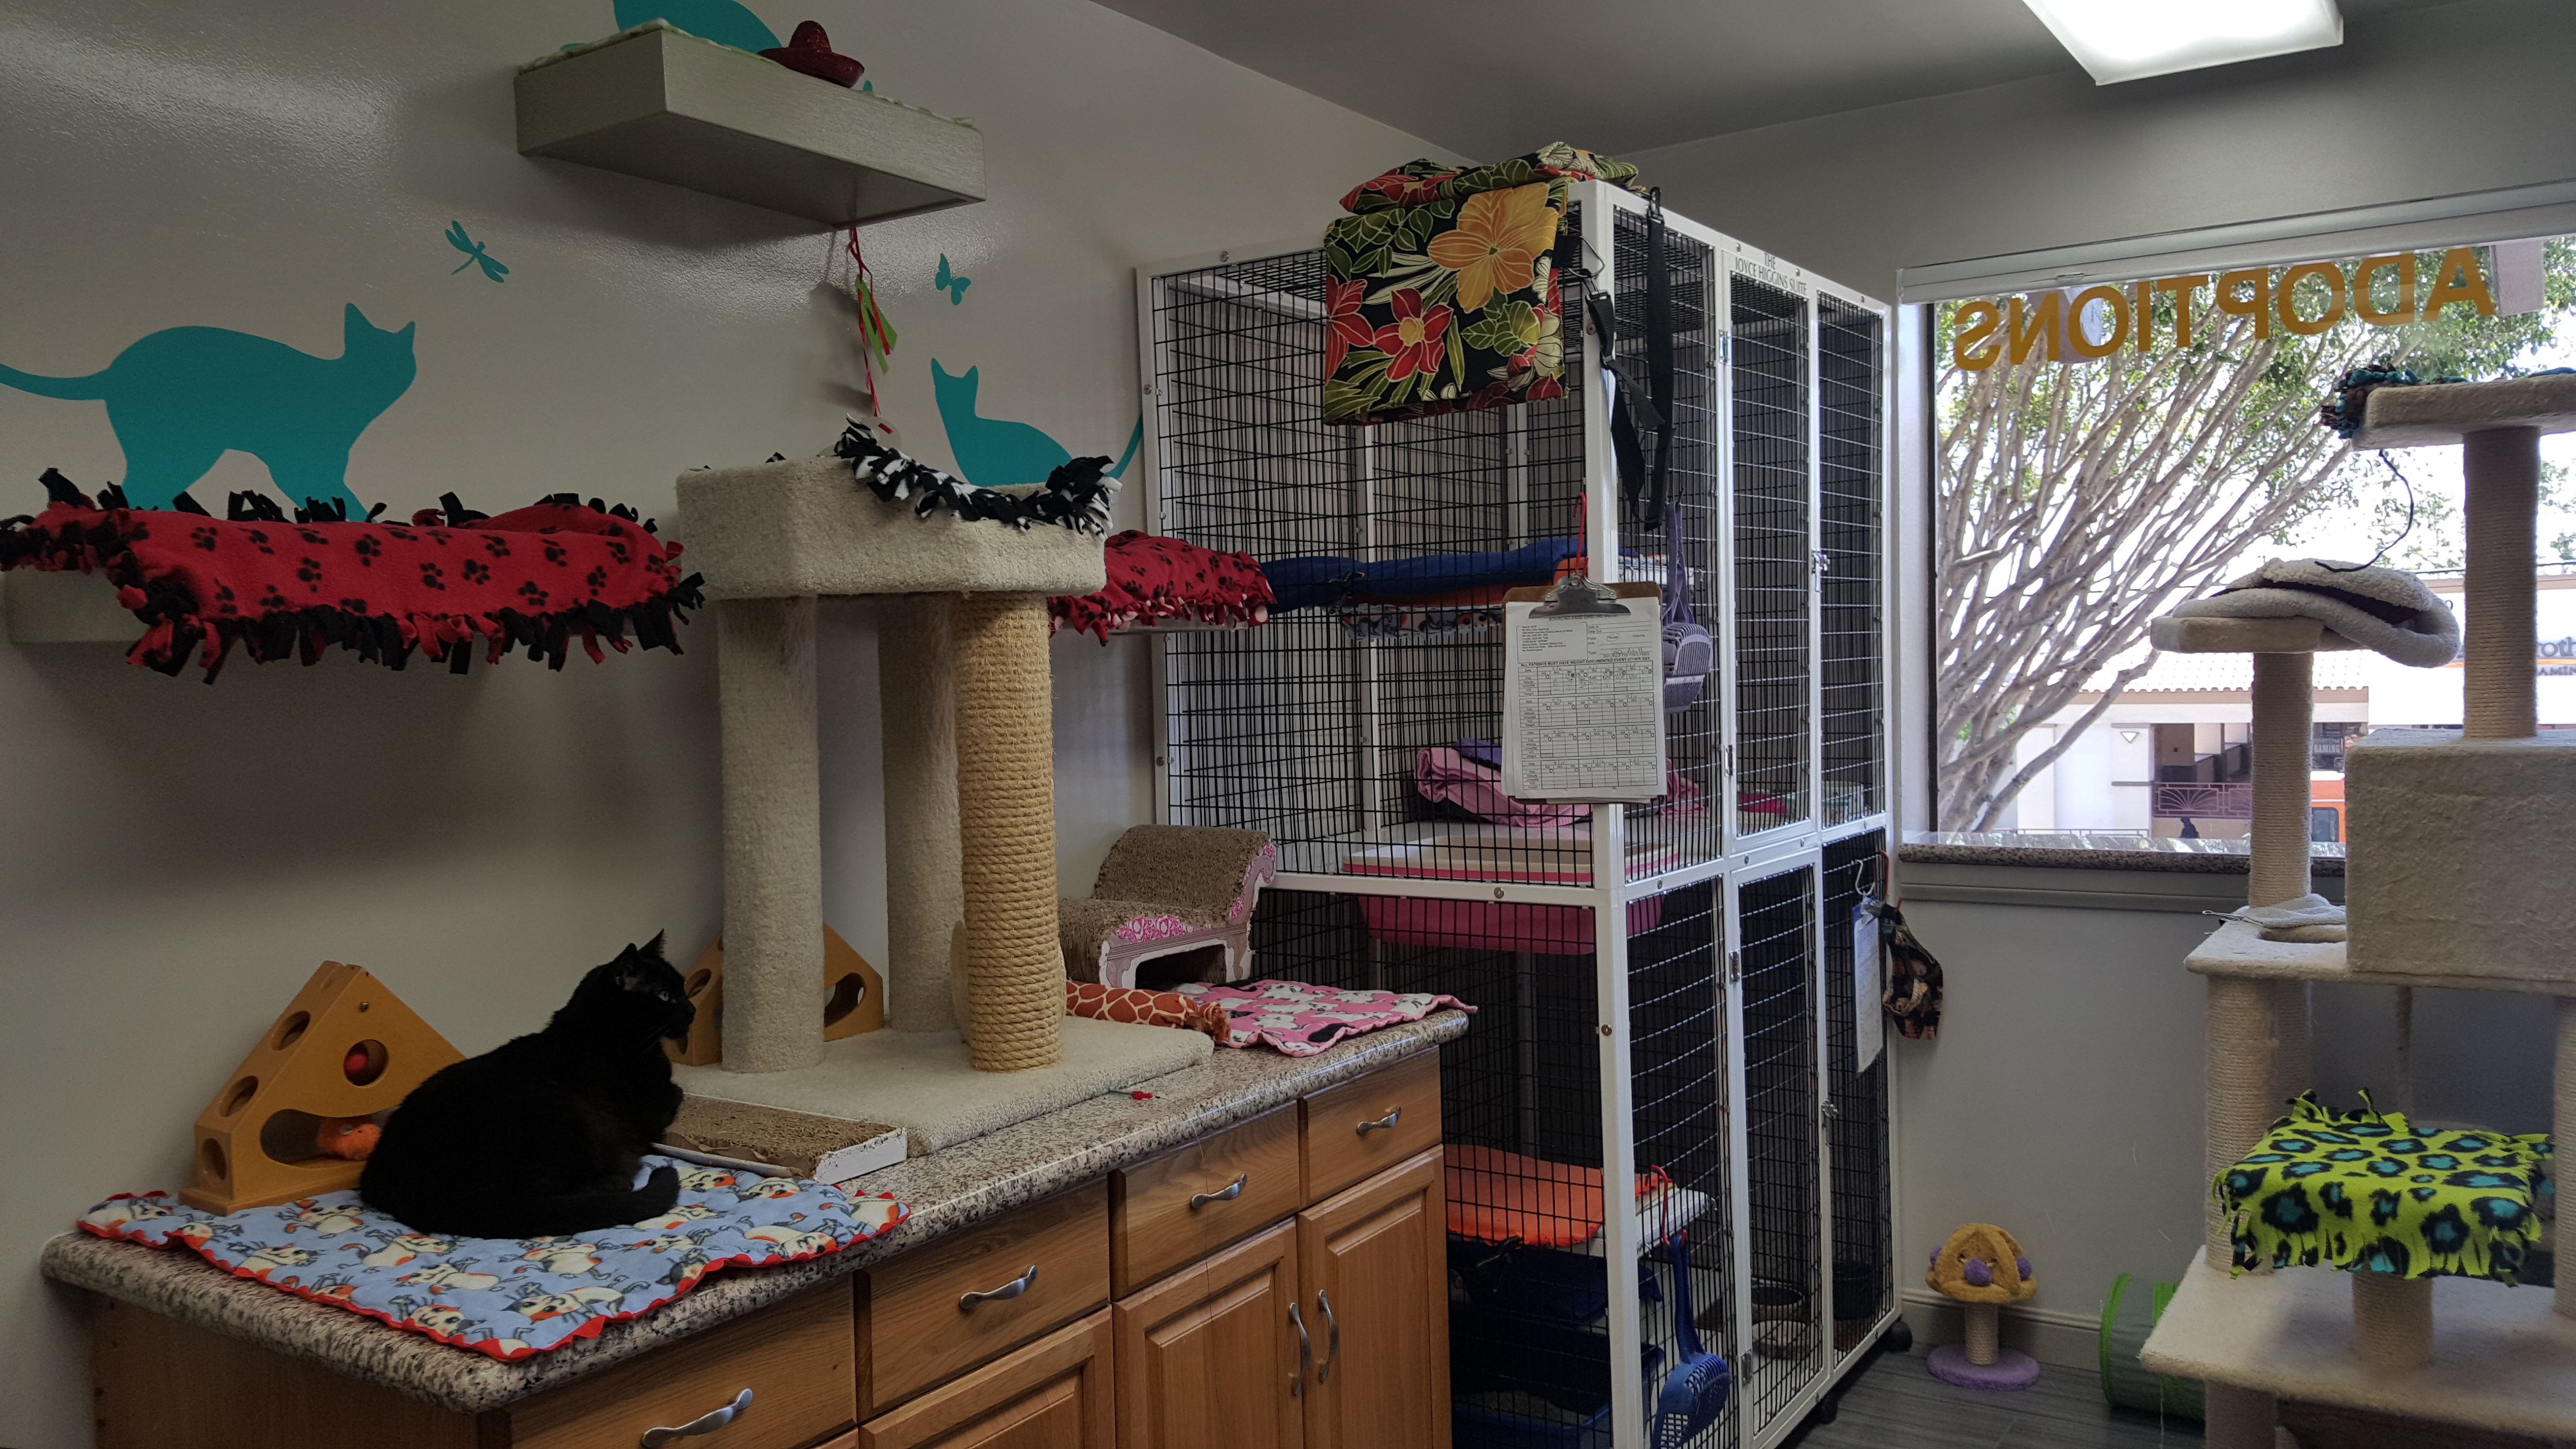 Pets for Adoption at Peter Zippi Memorial Fund Inc, in Hermosa Beach Cat Home Designs Inc on design security inc, design construction, design guild homes, design house inc, design homes ceo, design technology inc,